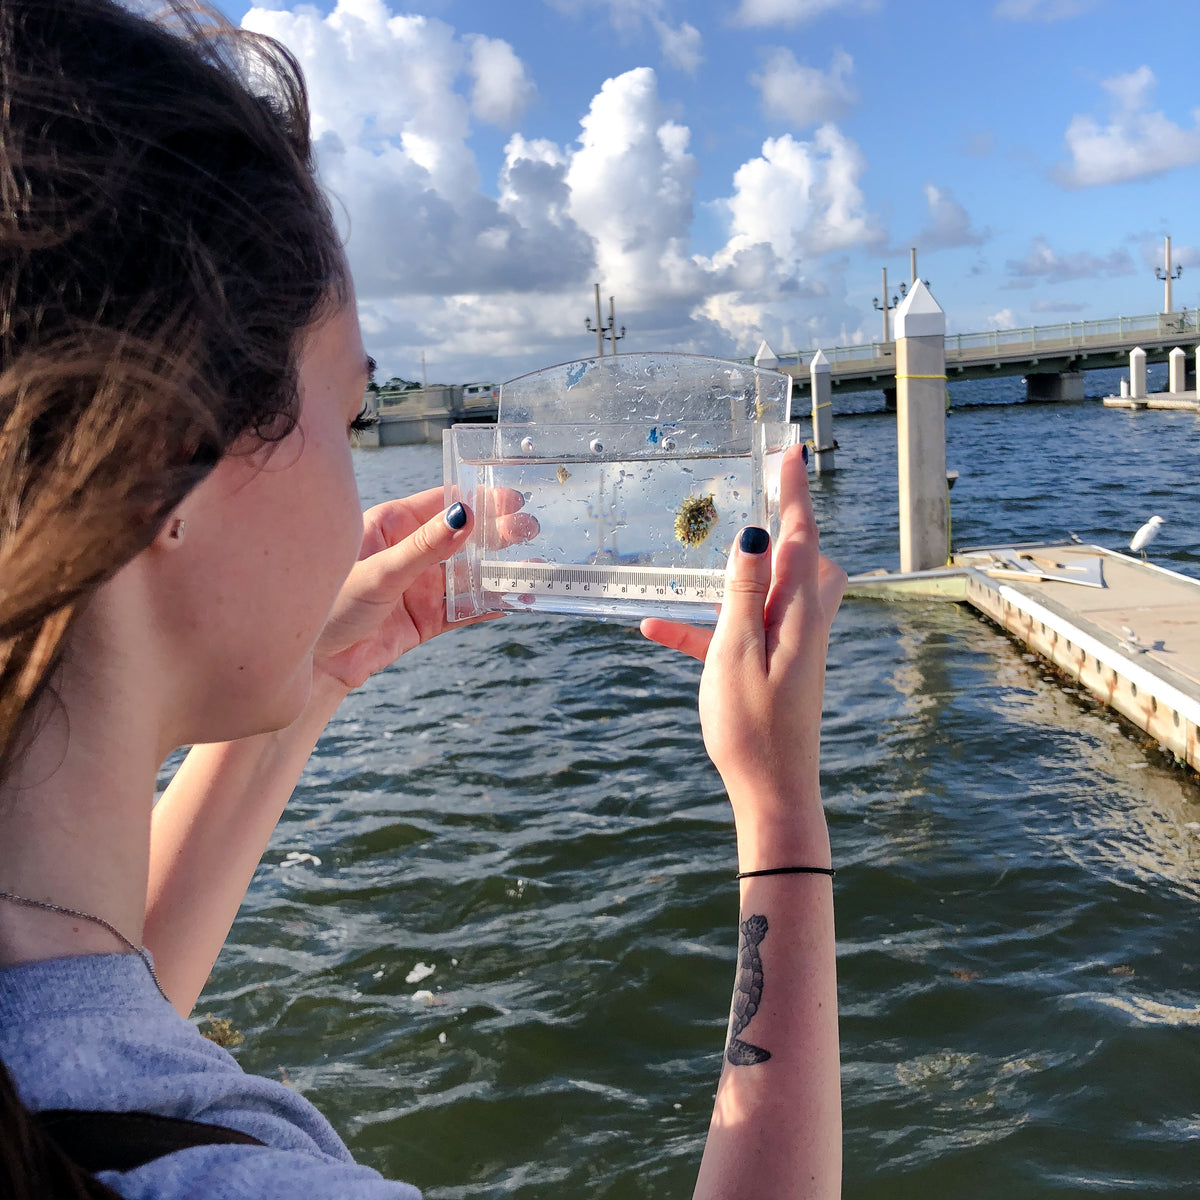 Connected Clothing Company founder Lexy holding viewing chamber with juvenile striped burrfish on a pier